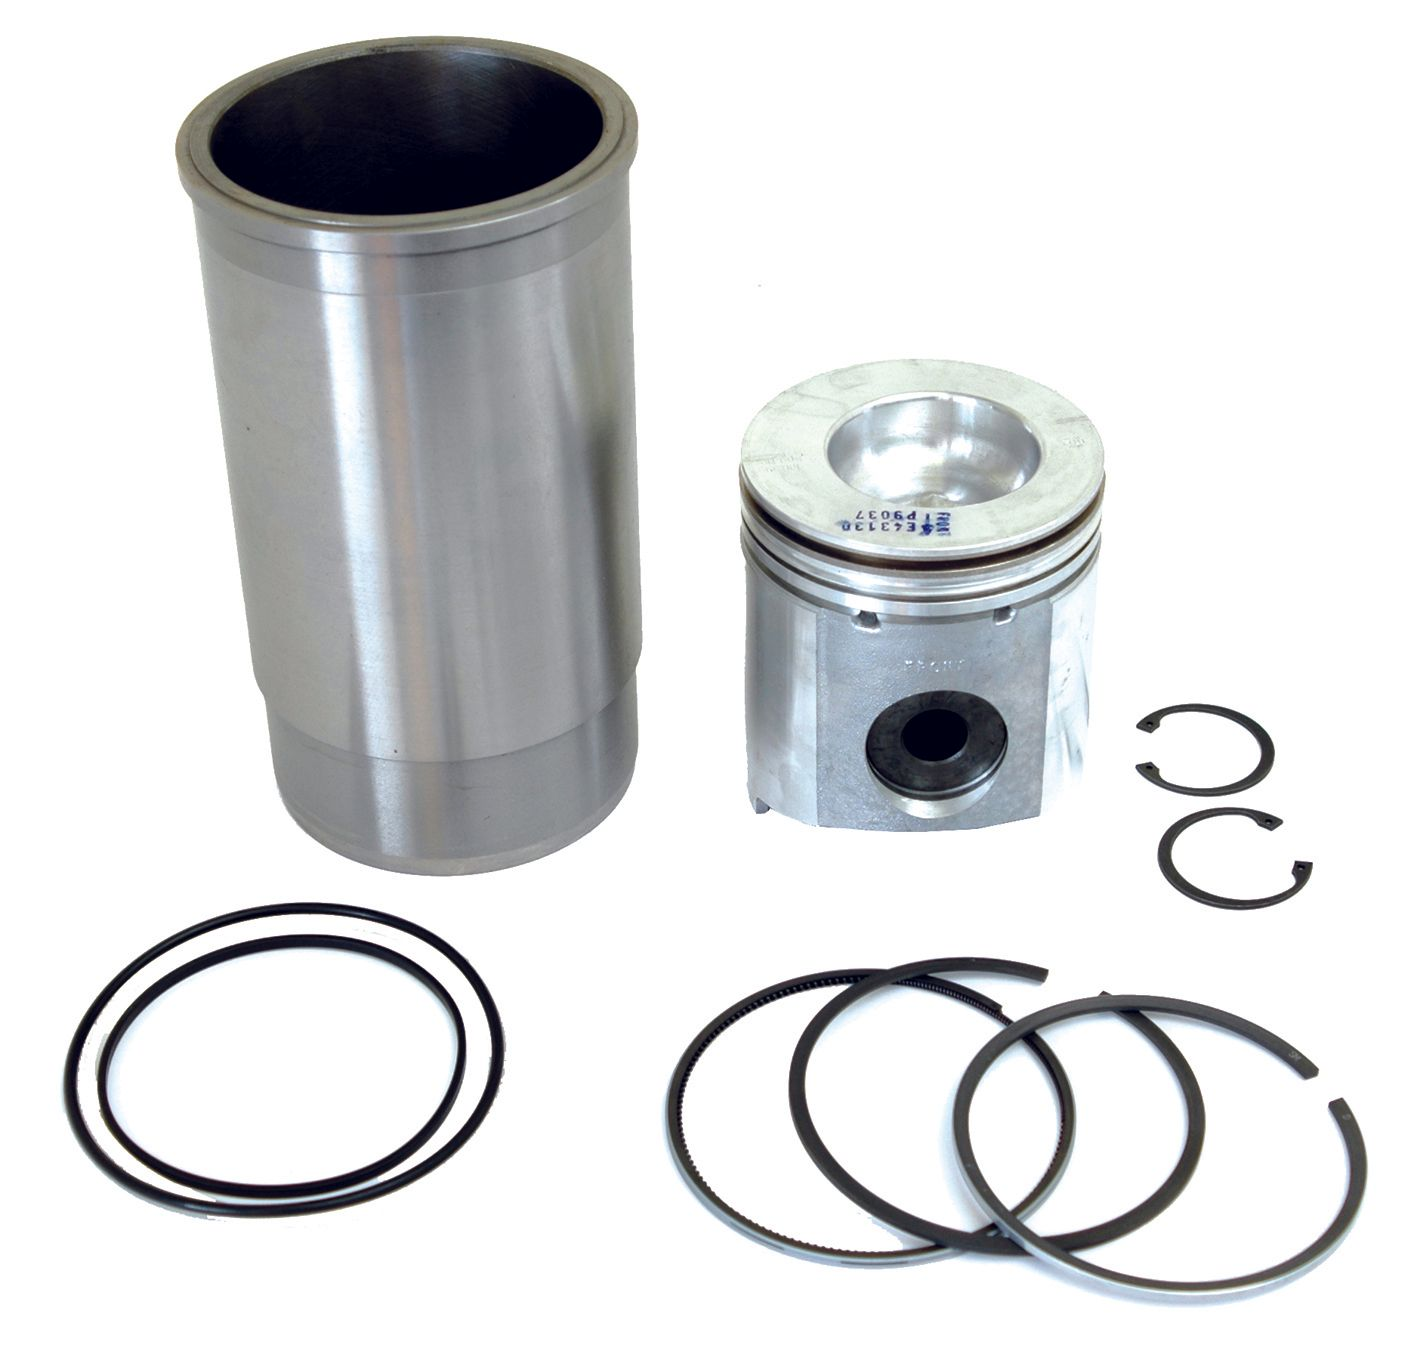 JOHN DEERE PISTON,RING & LINER KIT 31833